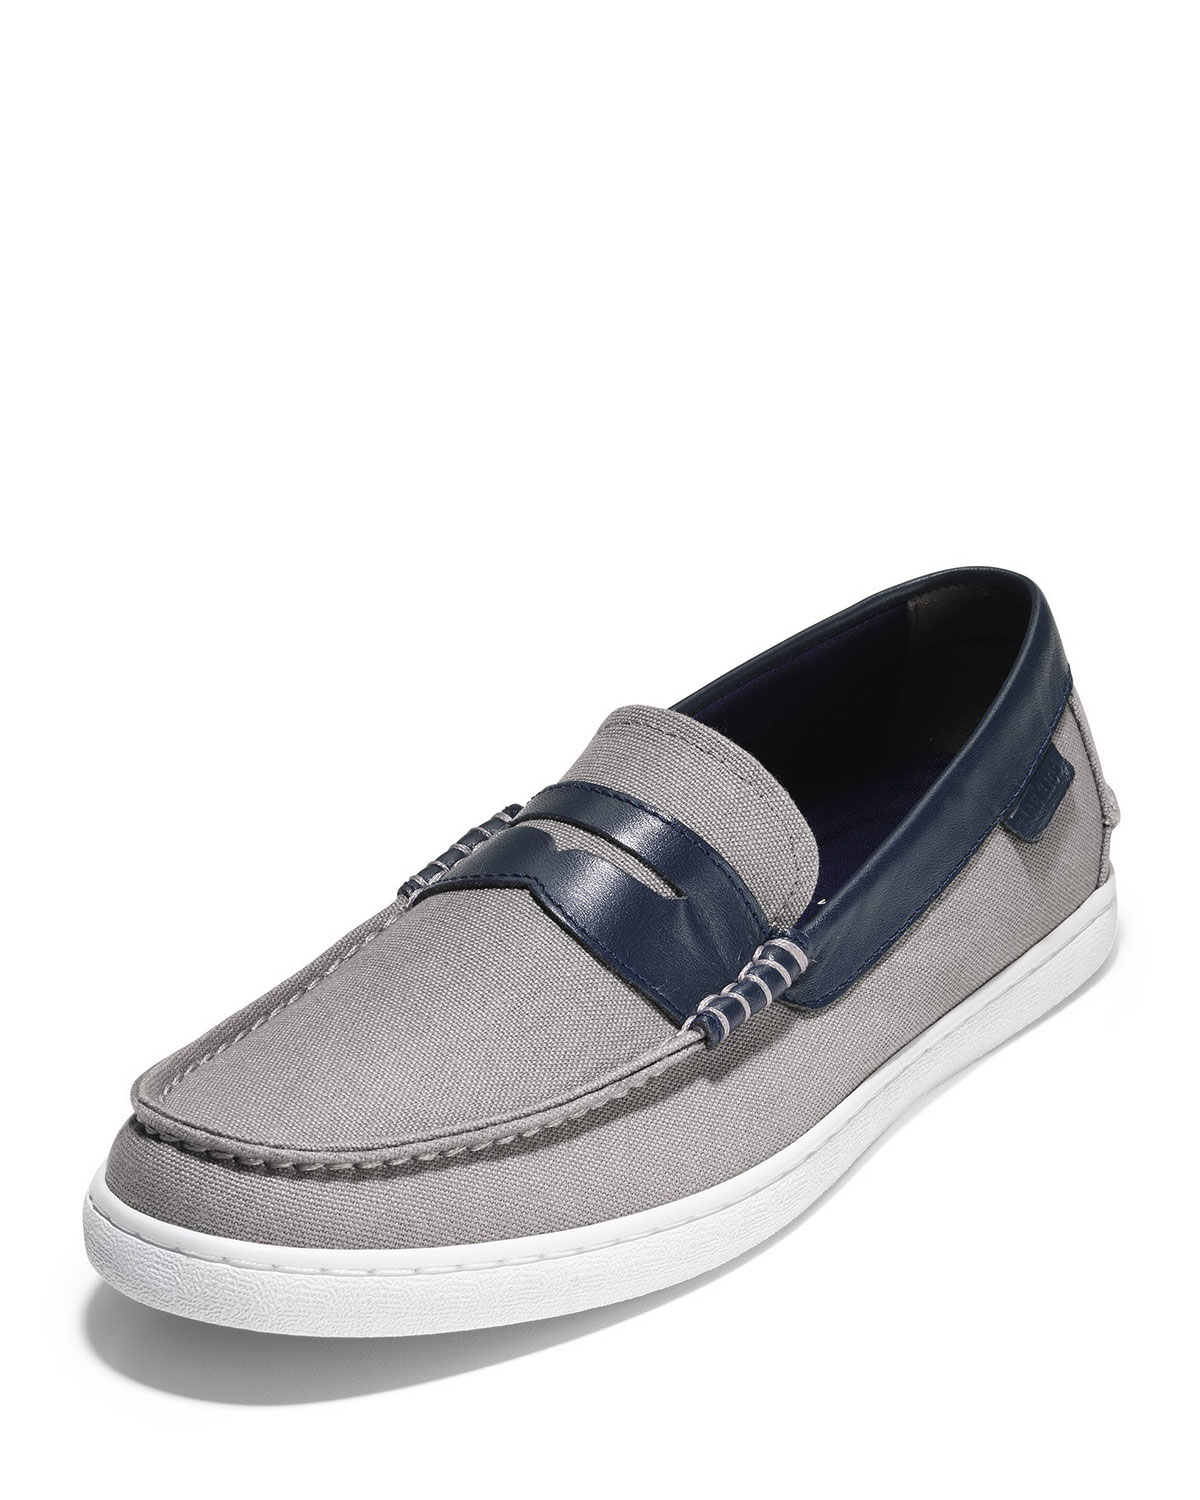 47f35d42787 Cole Haan Men s Nantucket Canvas Penny Loafers